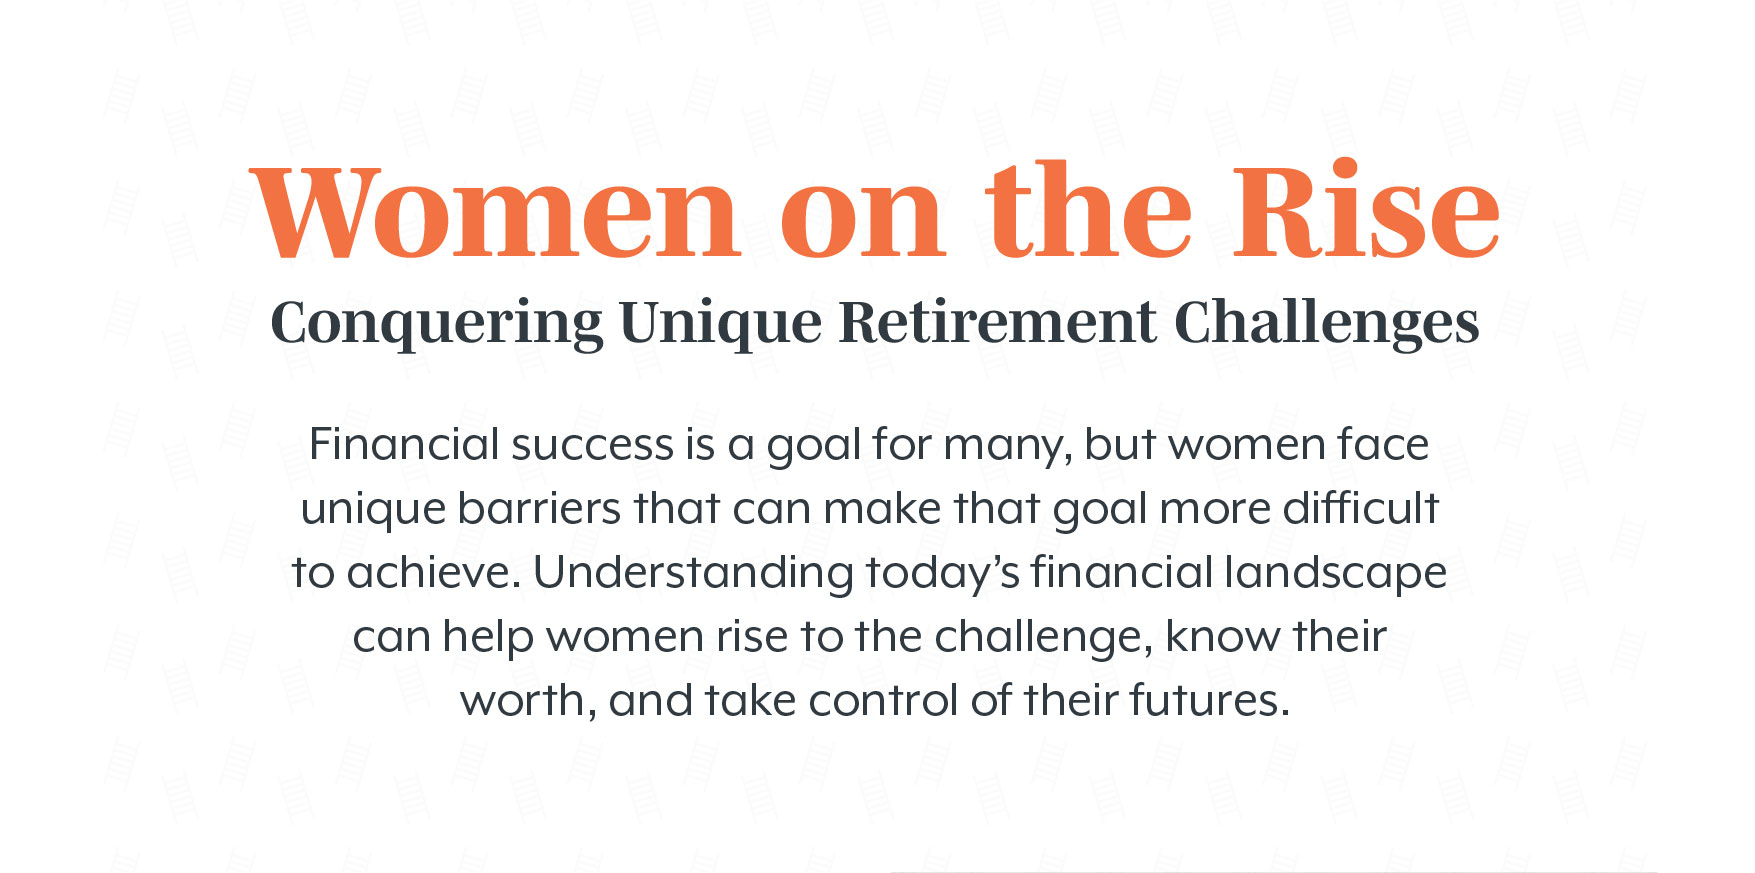 Women on the Rise Conquering: Unique Retirement Challenges. Financial success is a goal for many, but women face unique barriers that can make that goal more difficult to achieve. Understanding today's financial landscape can help women rise to the challenge, know their worth, and take control of their futures.